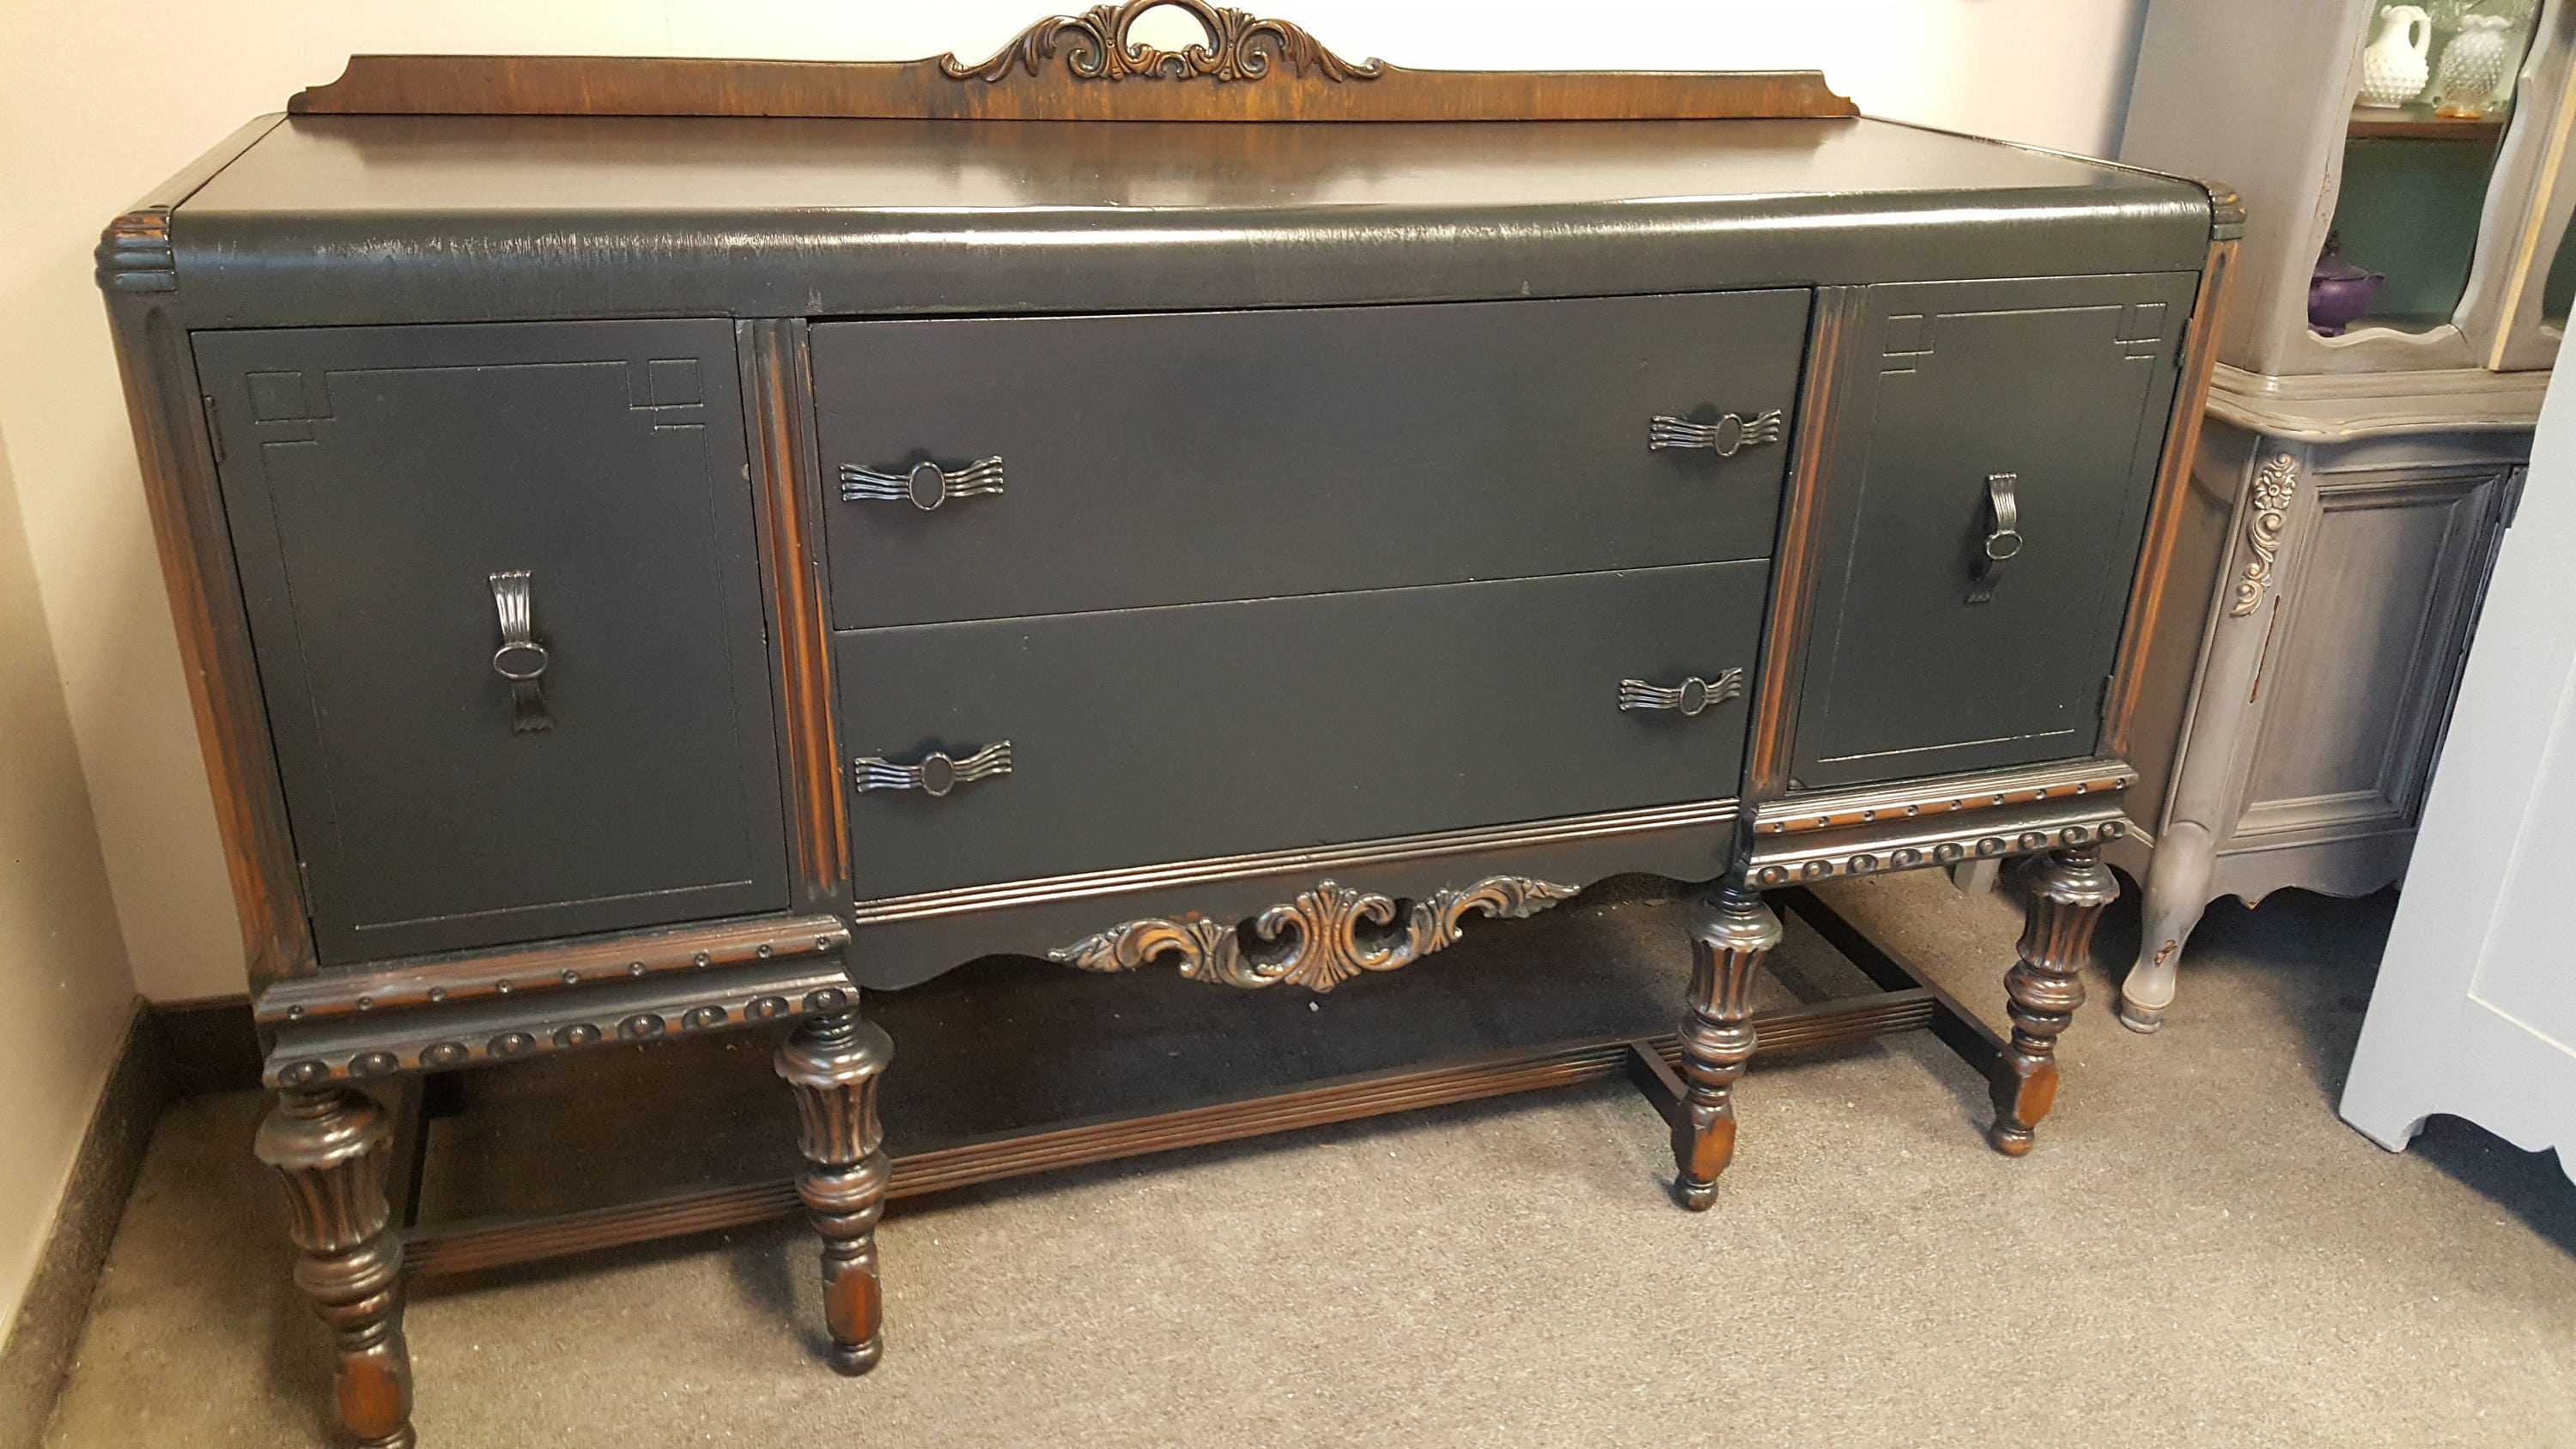 Vintage Shabby Chic Buffet, Sideboard, Server, PICK Up ONLY, Media Center,  Tv Console, Liquor Cabinet, Distressed, Rustic, Farmhouse,